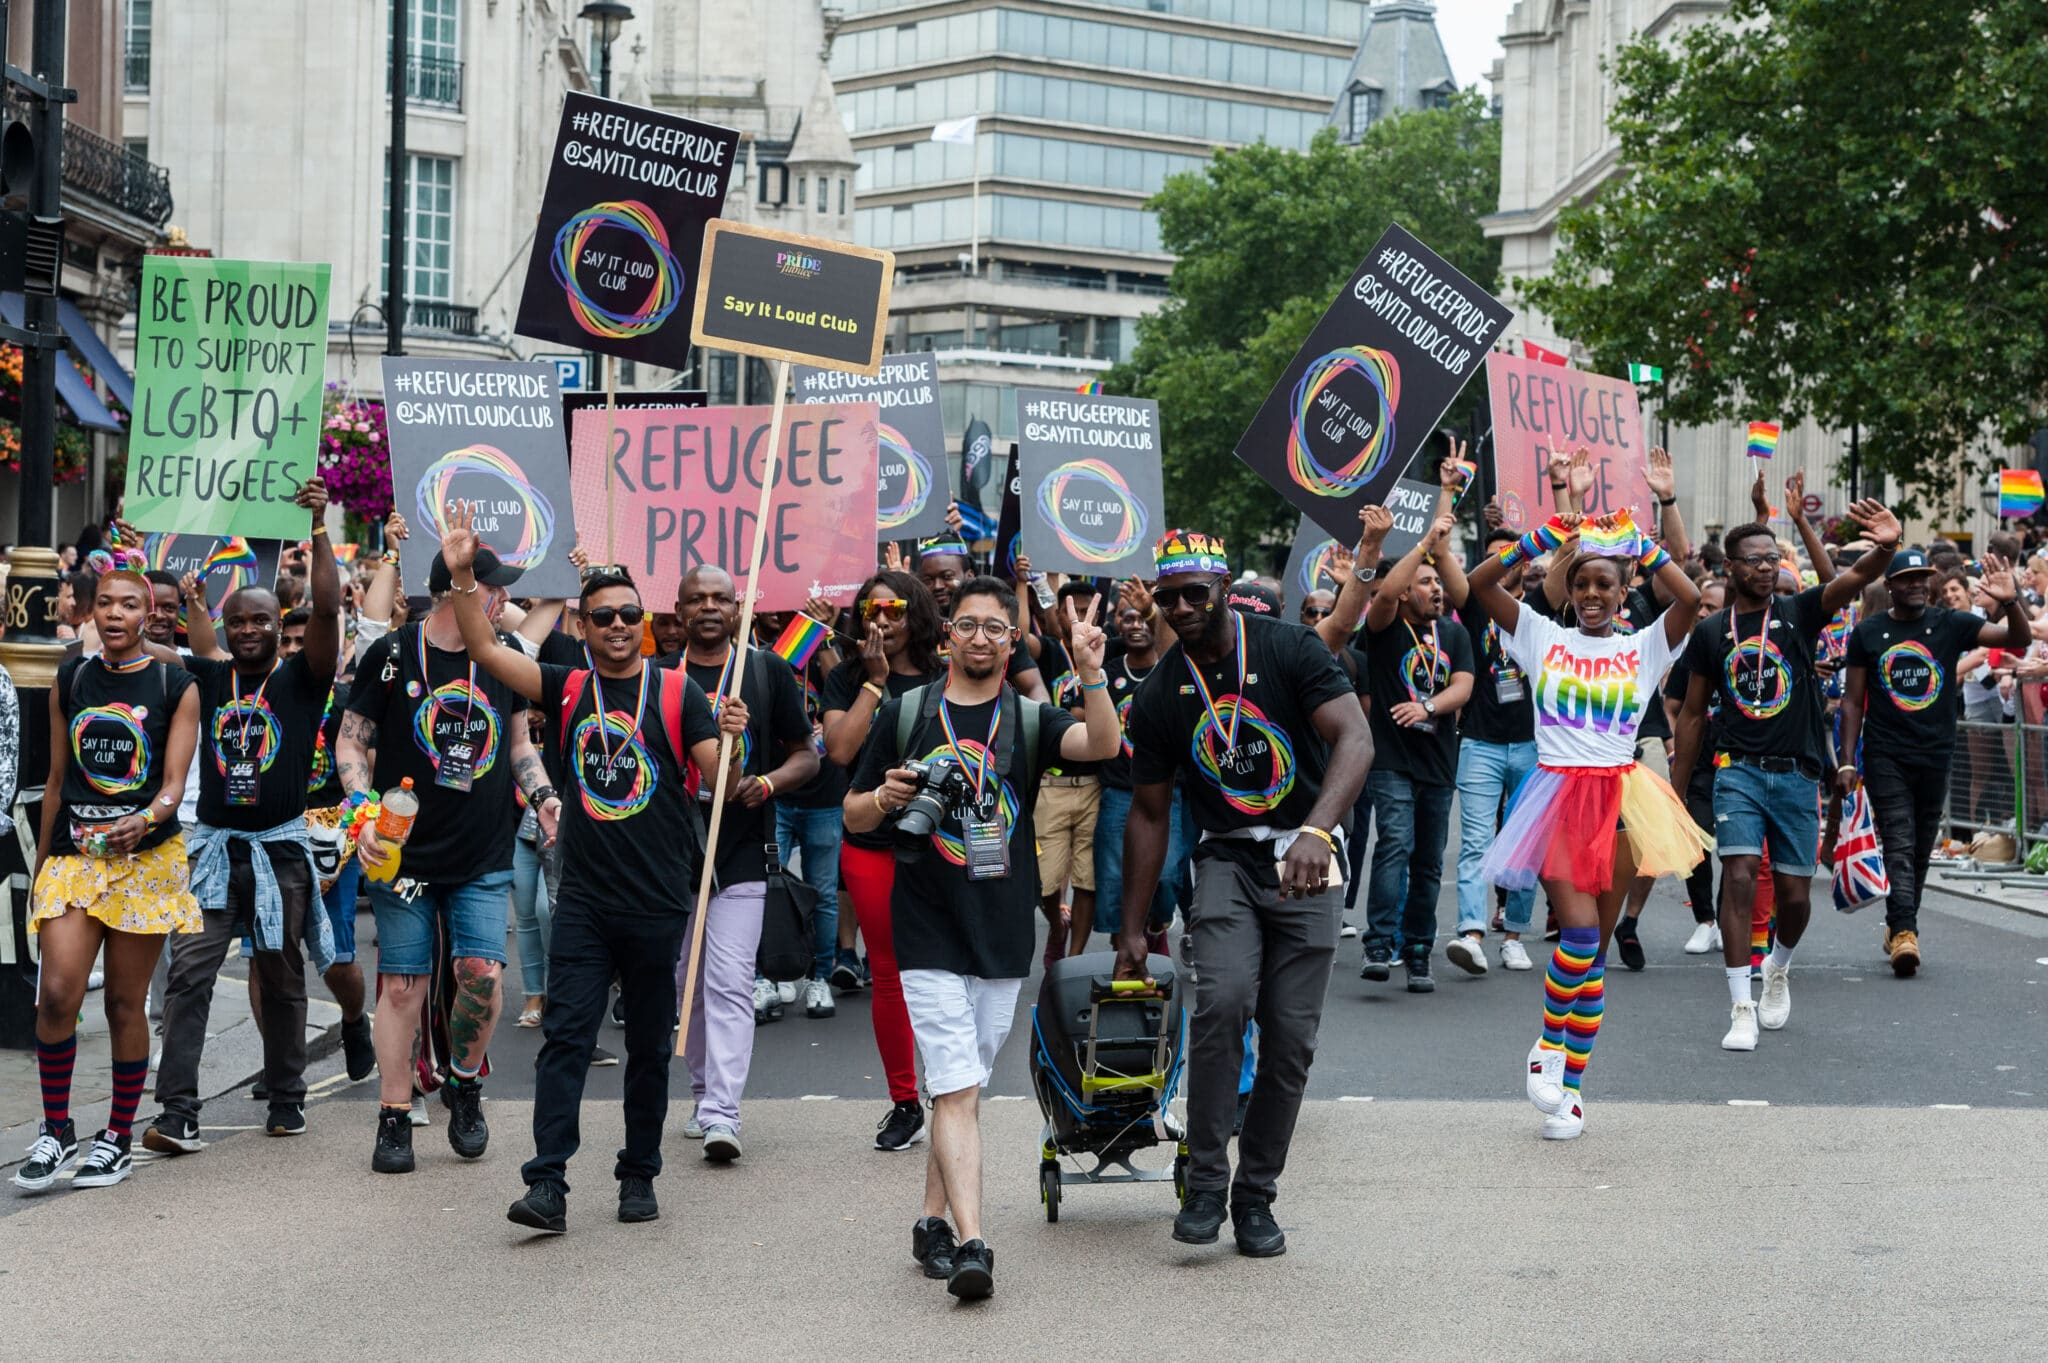 """A crowd of mostly Black and brown LGBT+ protesters holding placards with messages like """"refugee pride"""" and """"be proud to support LGBTQ refugees"""""""